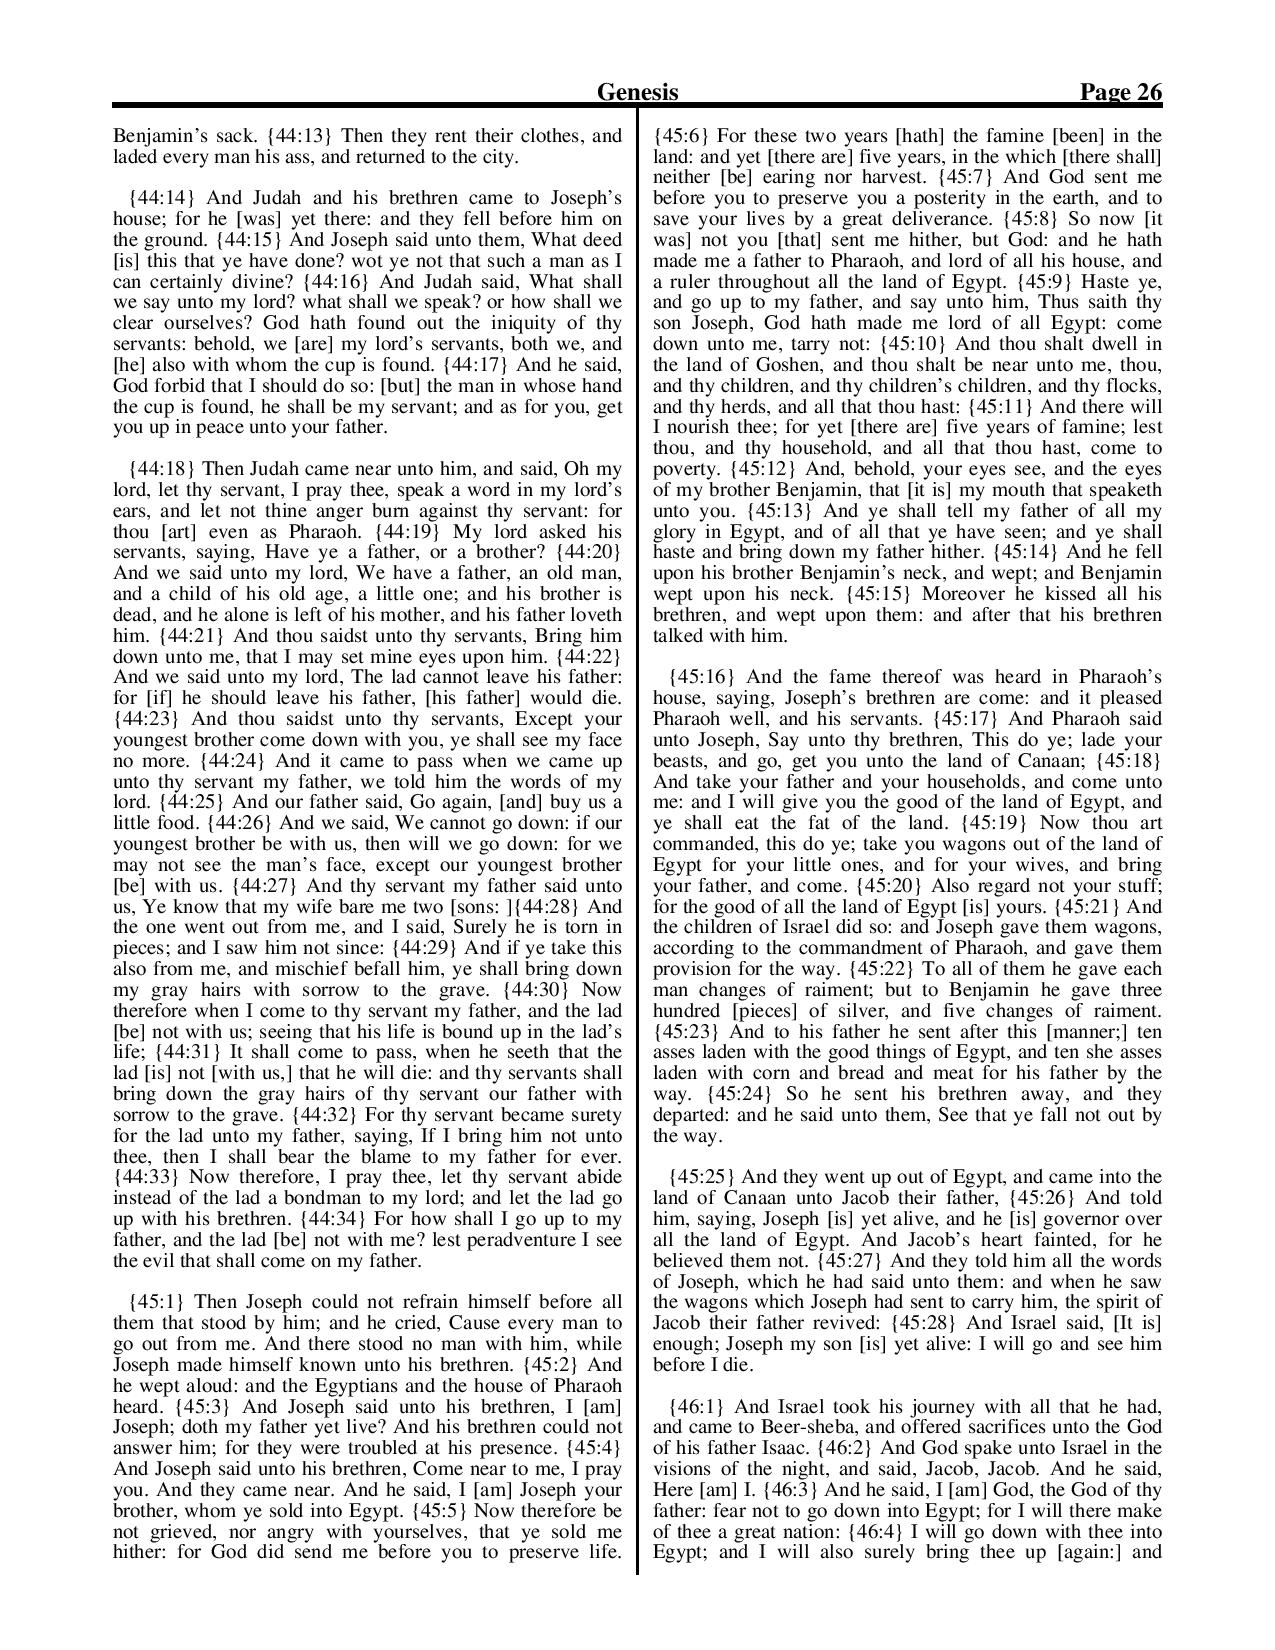 King-James-Bible-KJV-Bible-PDF-page-047